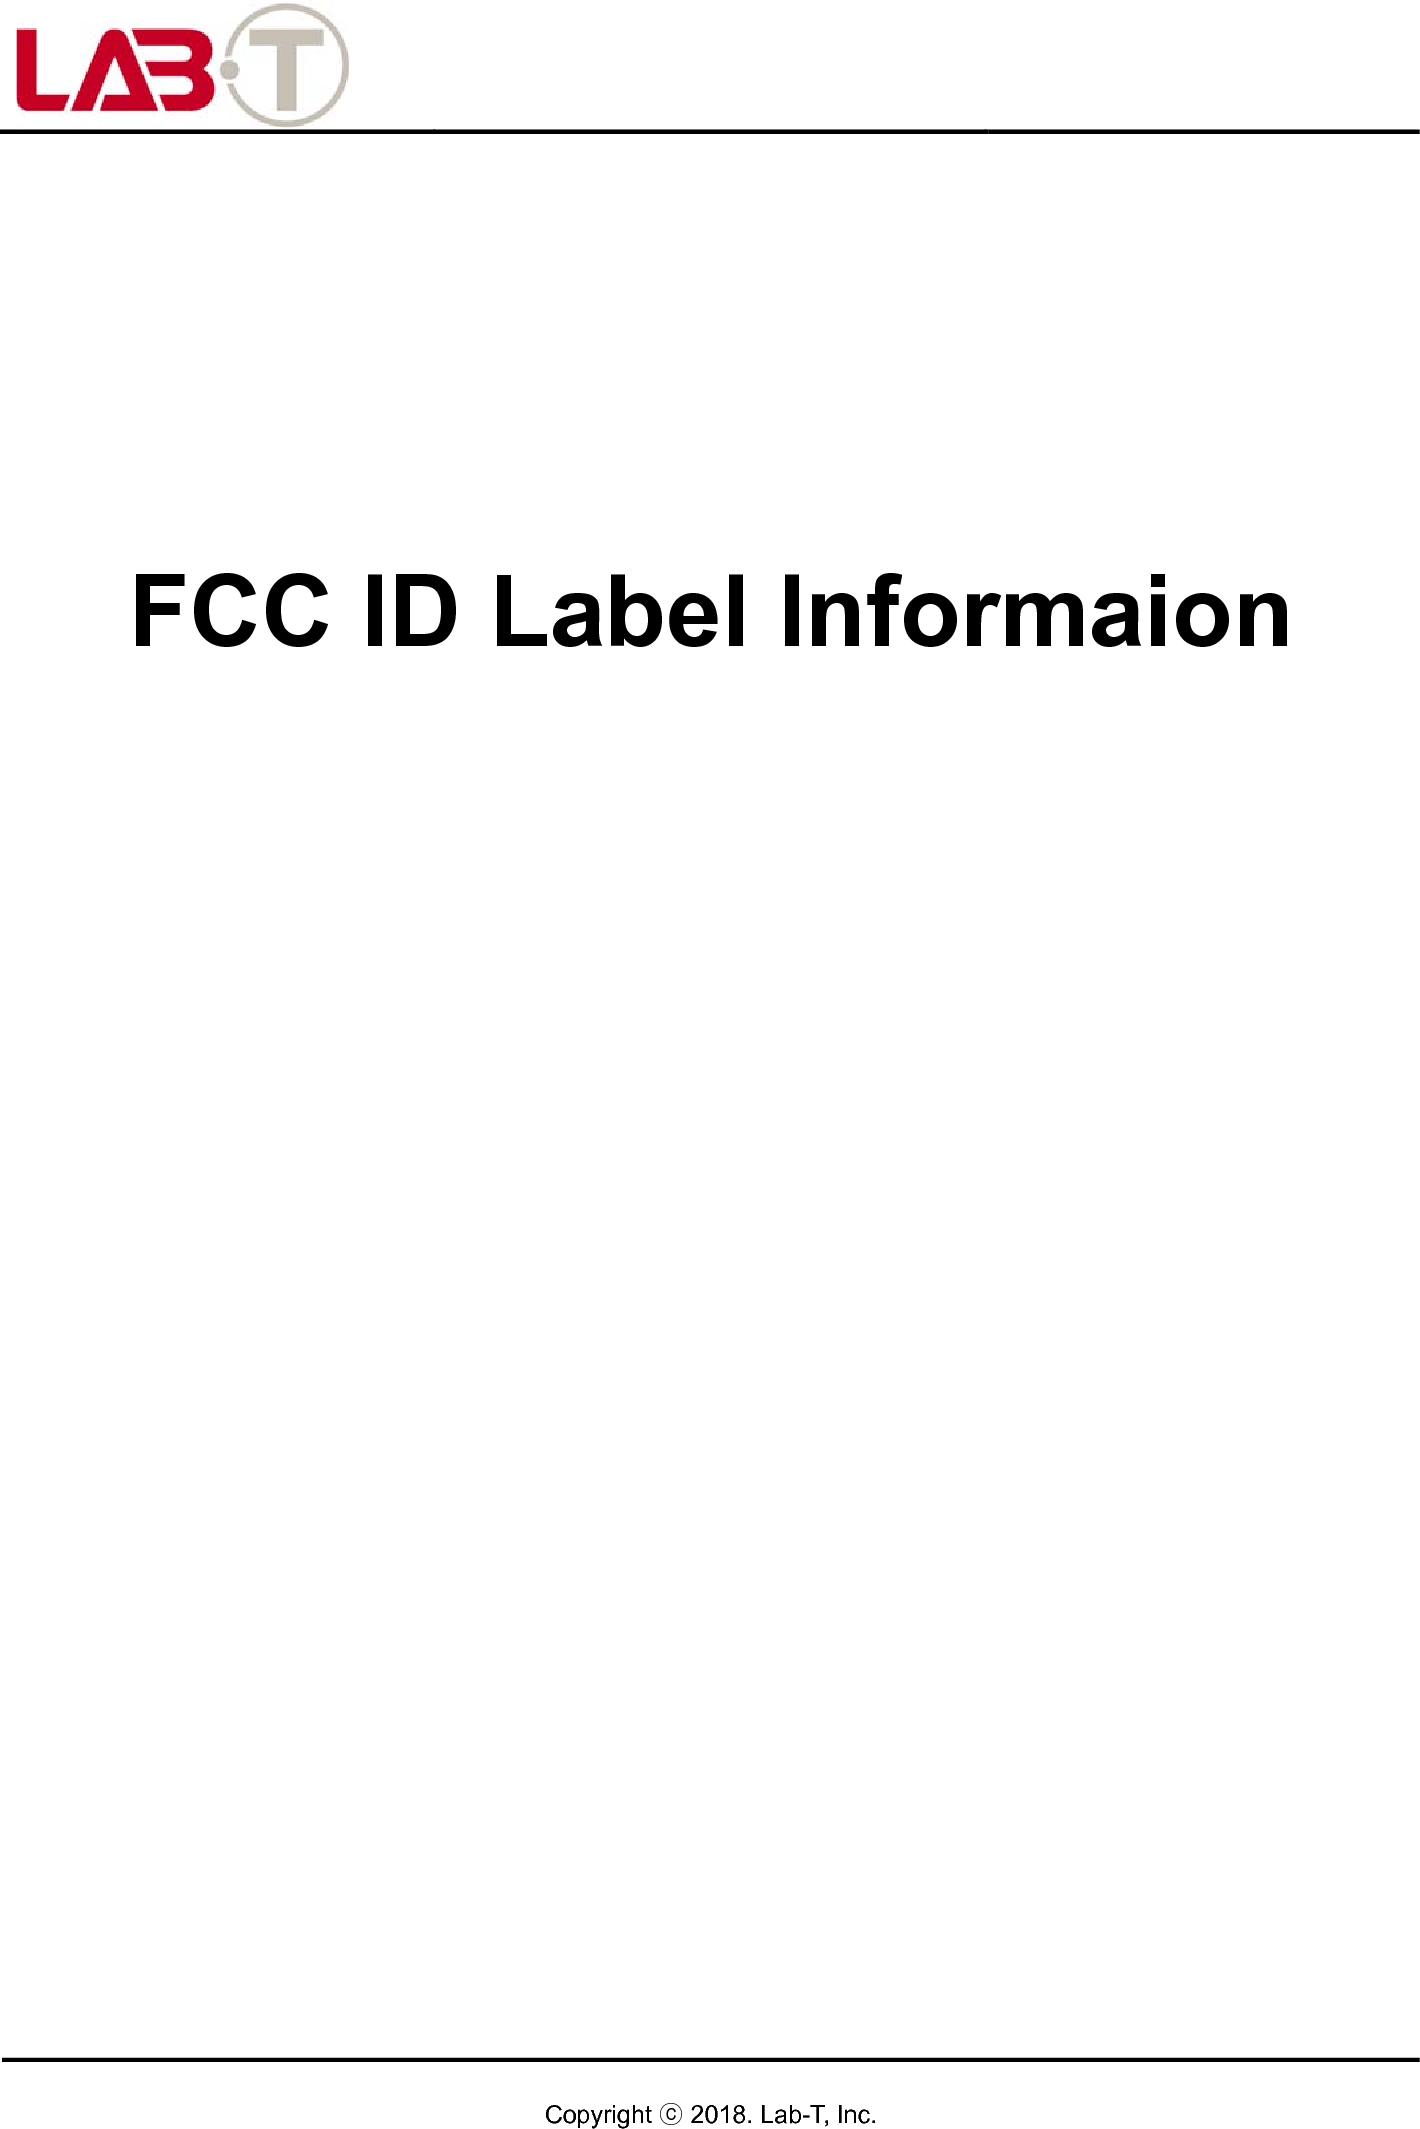 moa company Wireless Charger GFC01A (2ARMSGFC01A): FCC